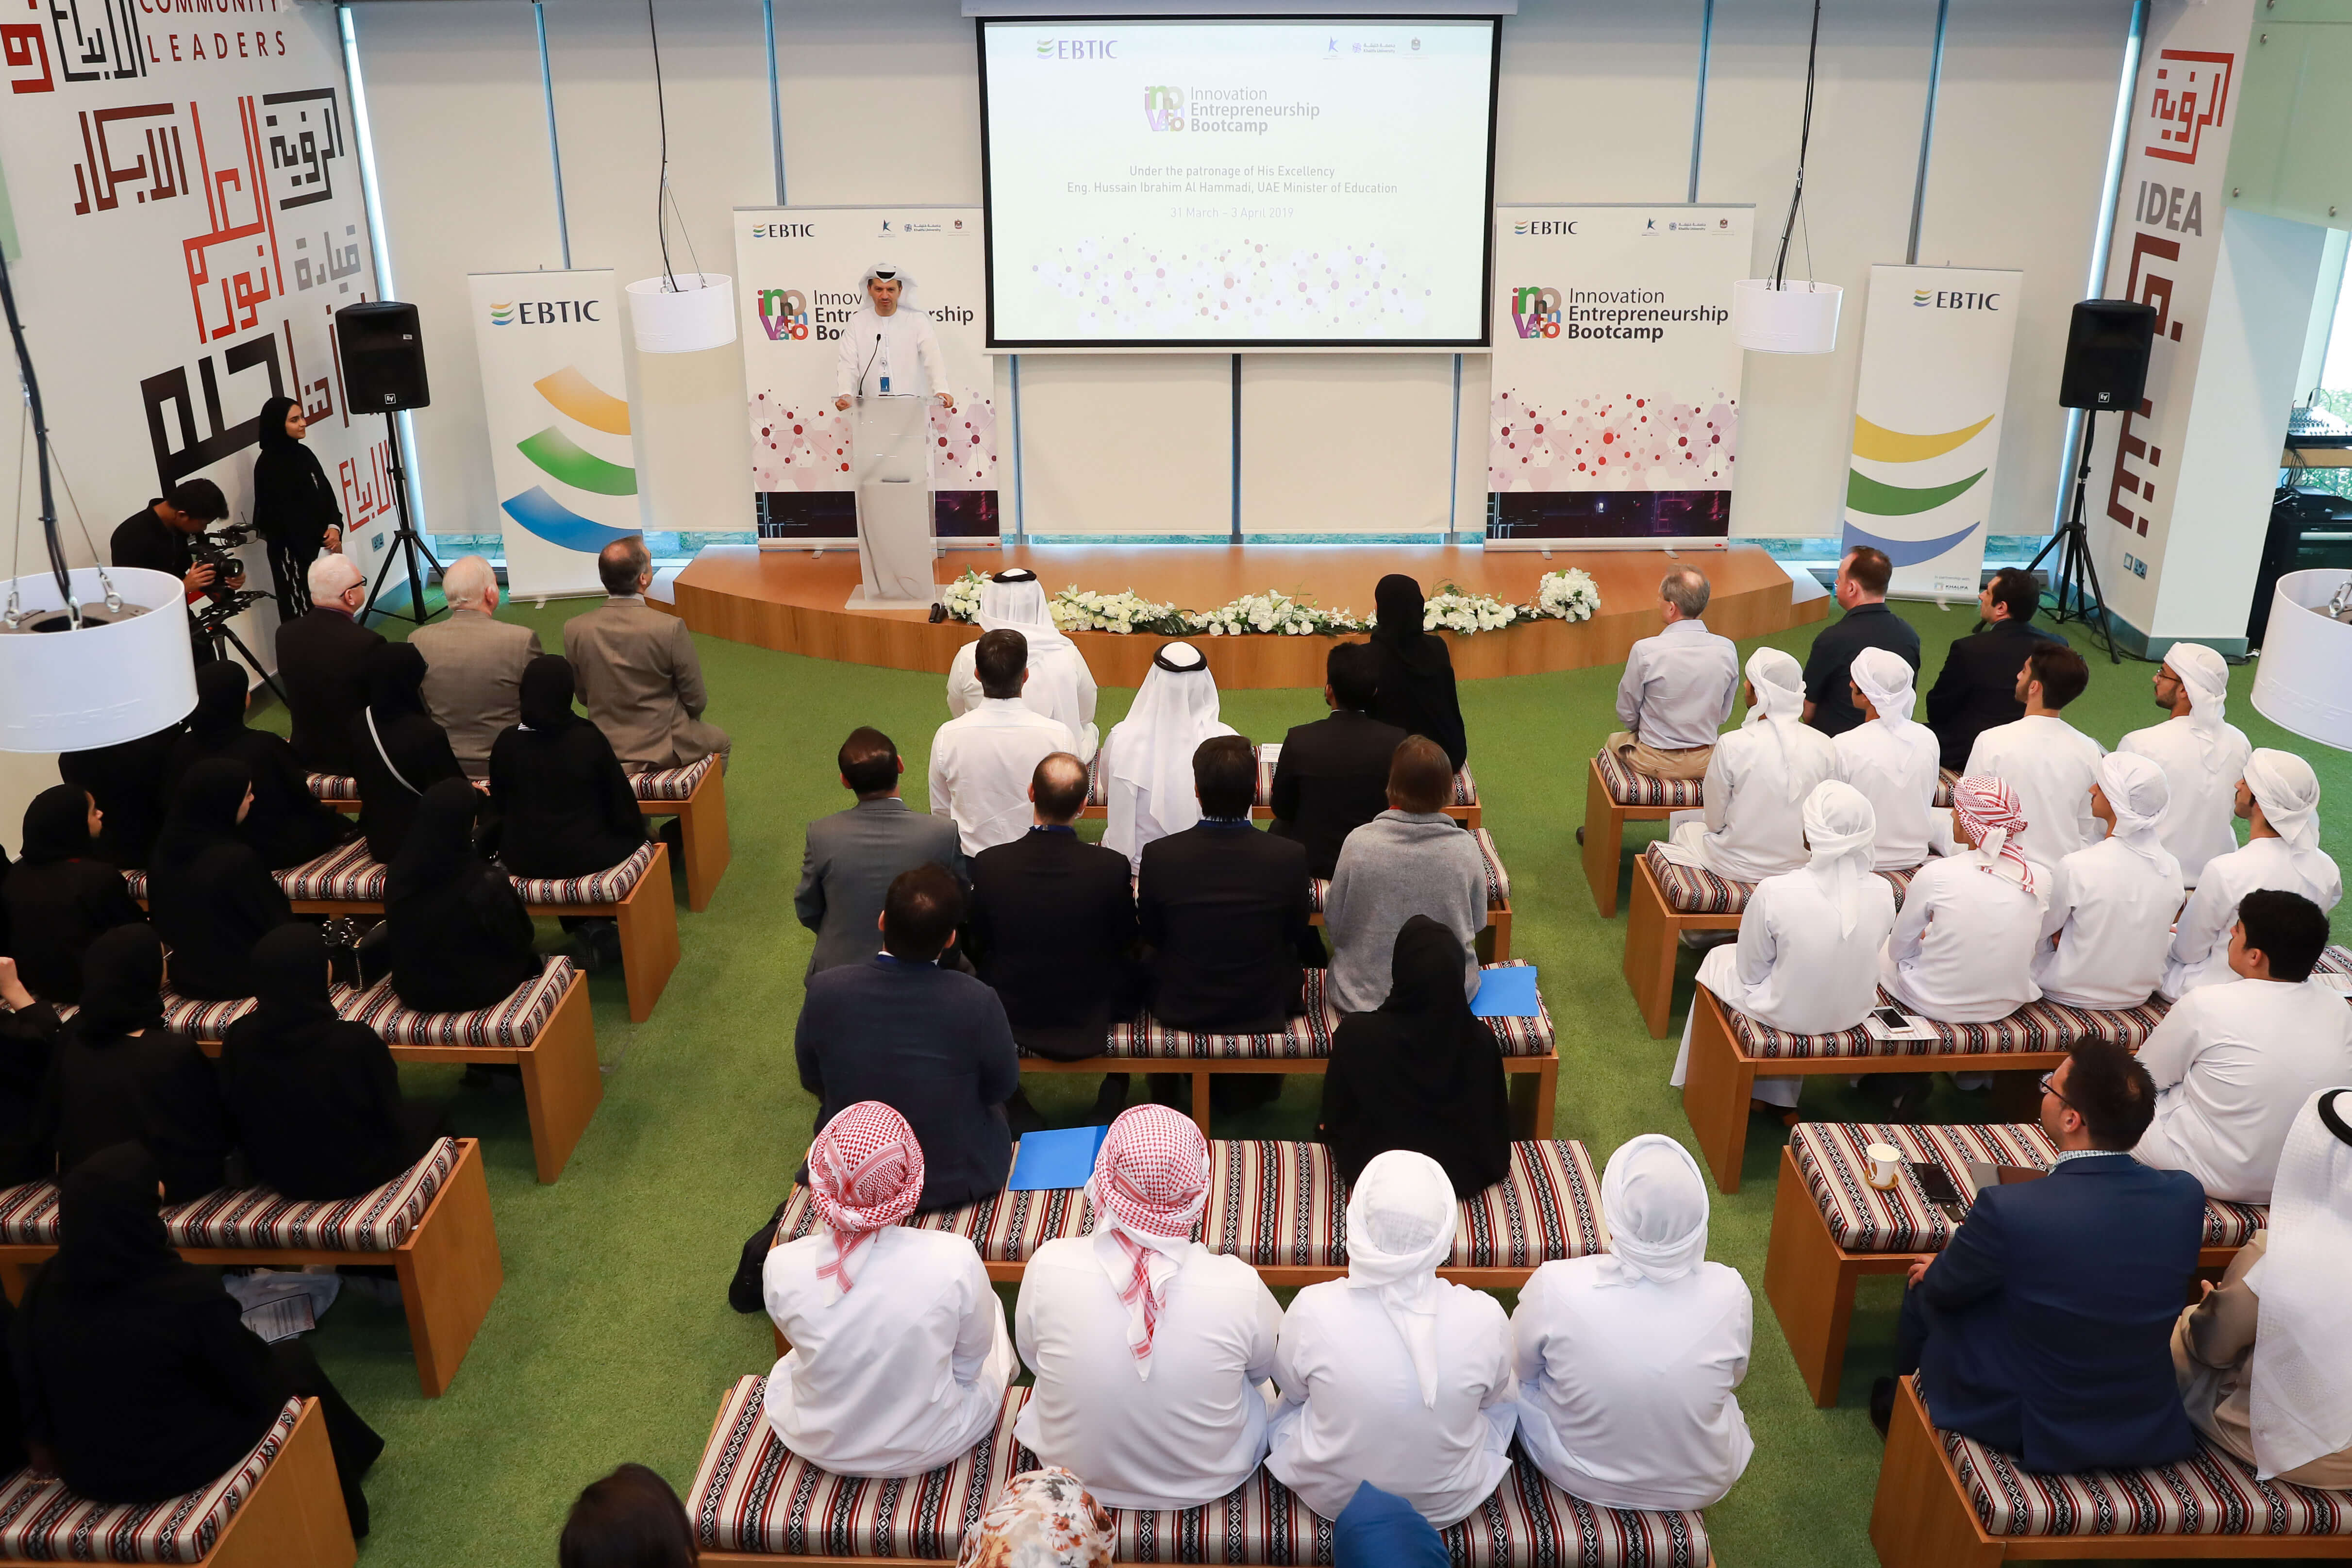 EBTIC's Fourth Innovation and Entrepreneurship Bootcamp at Khalifa University Concludes Successfully